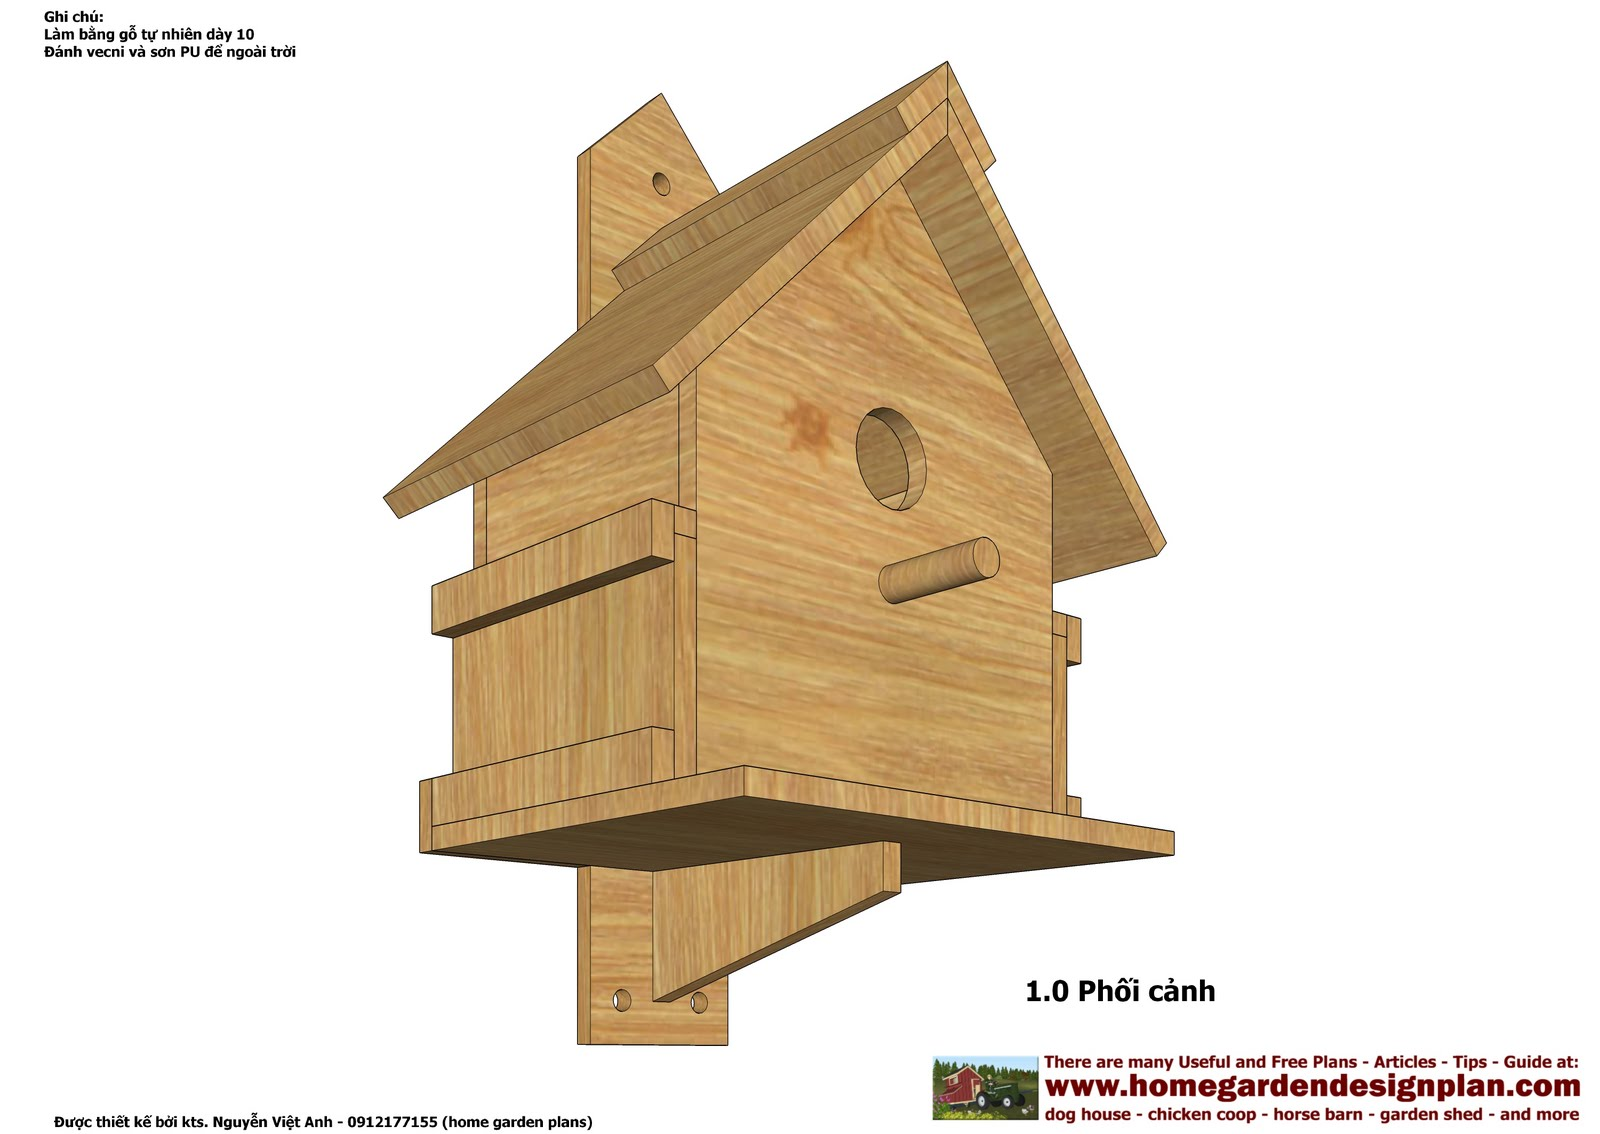 Home garden plans bh100 bird house plans construction bird house design how to build a Build a house online